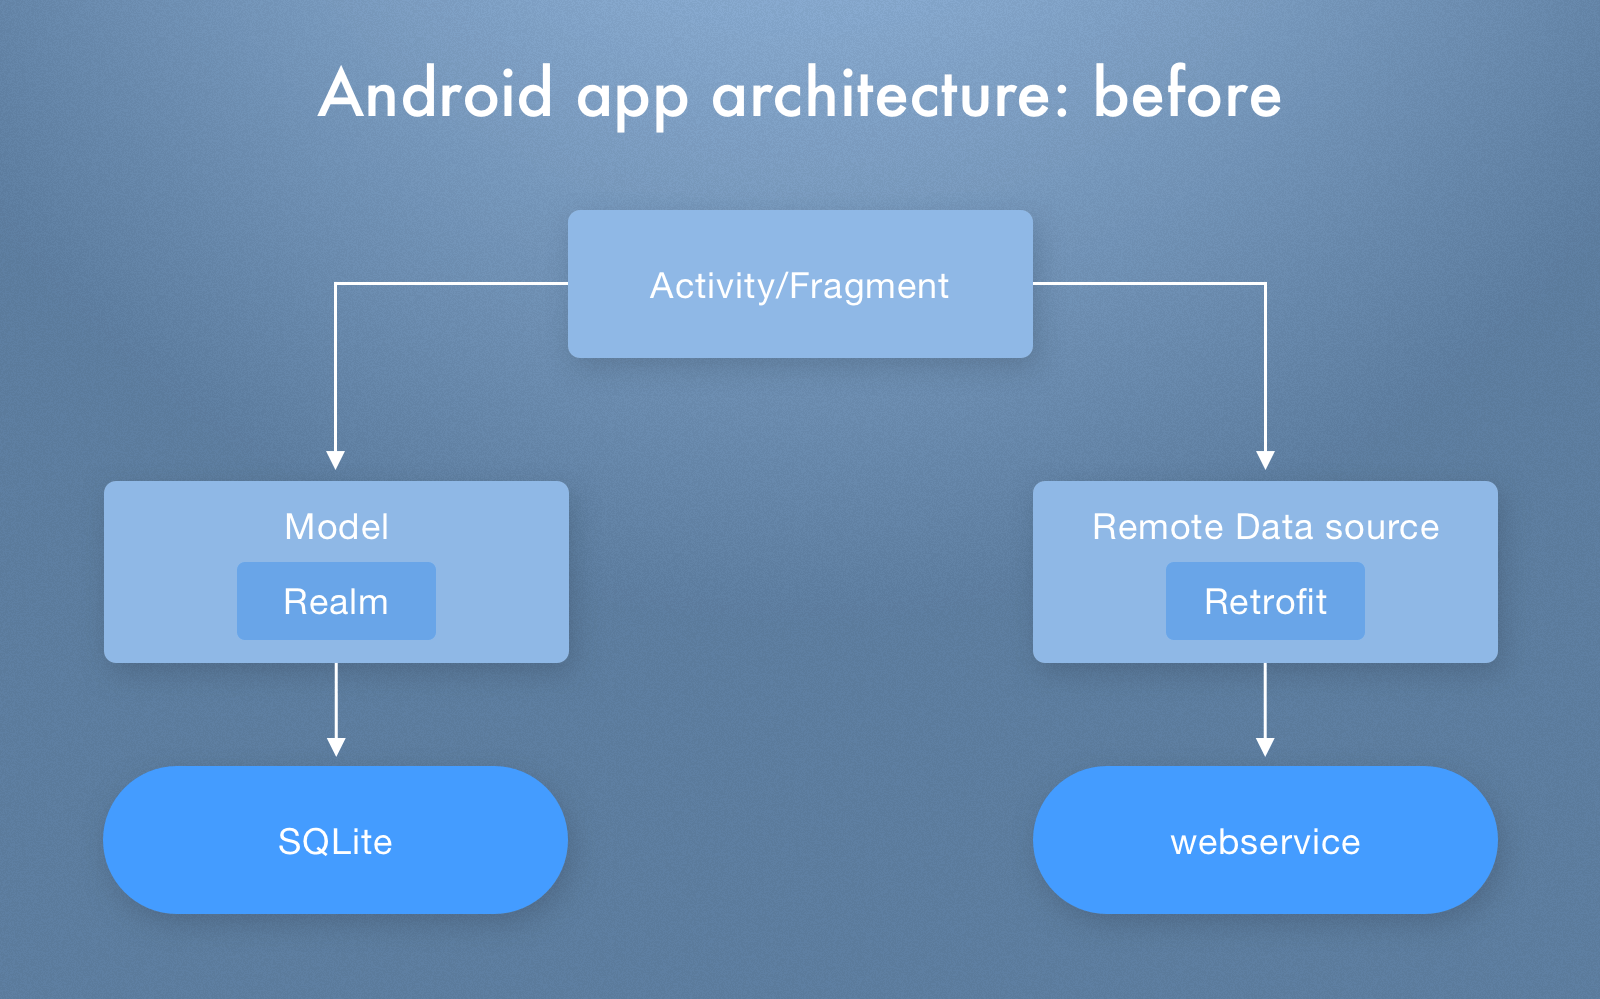 Android app architecture before